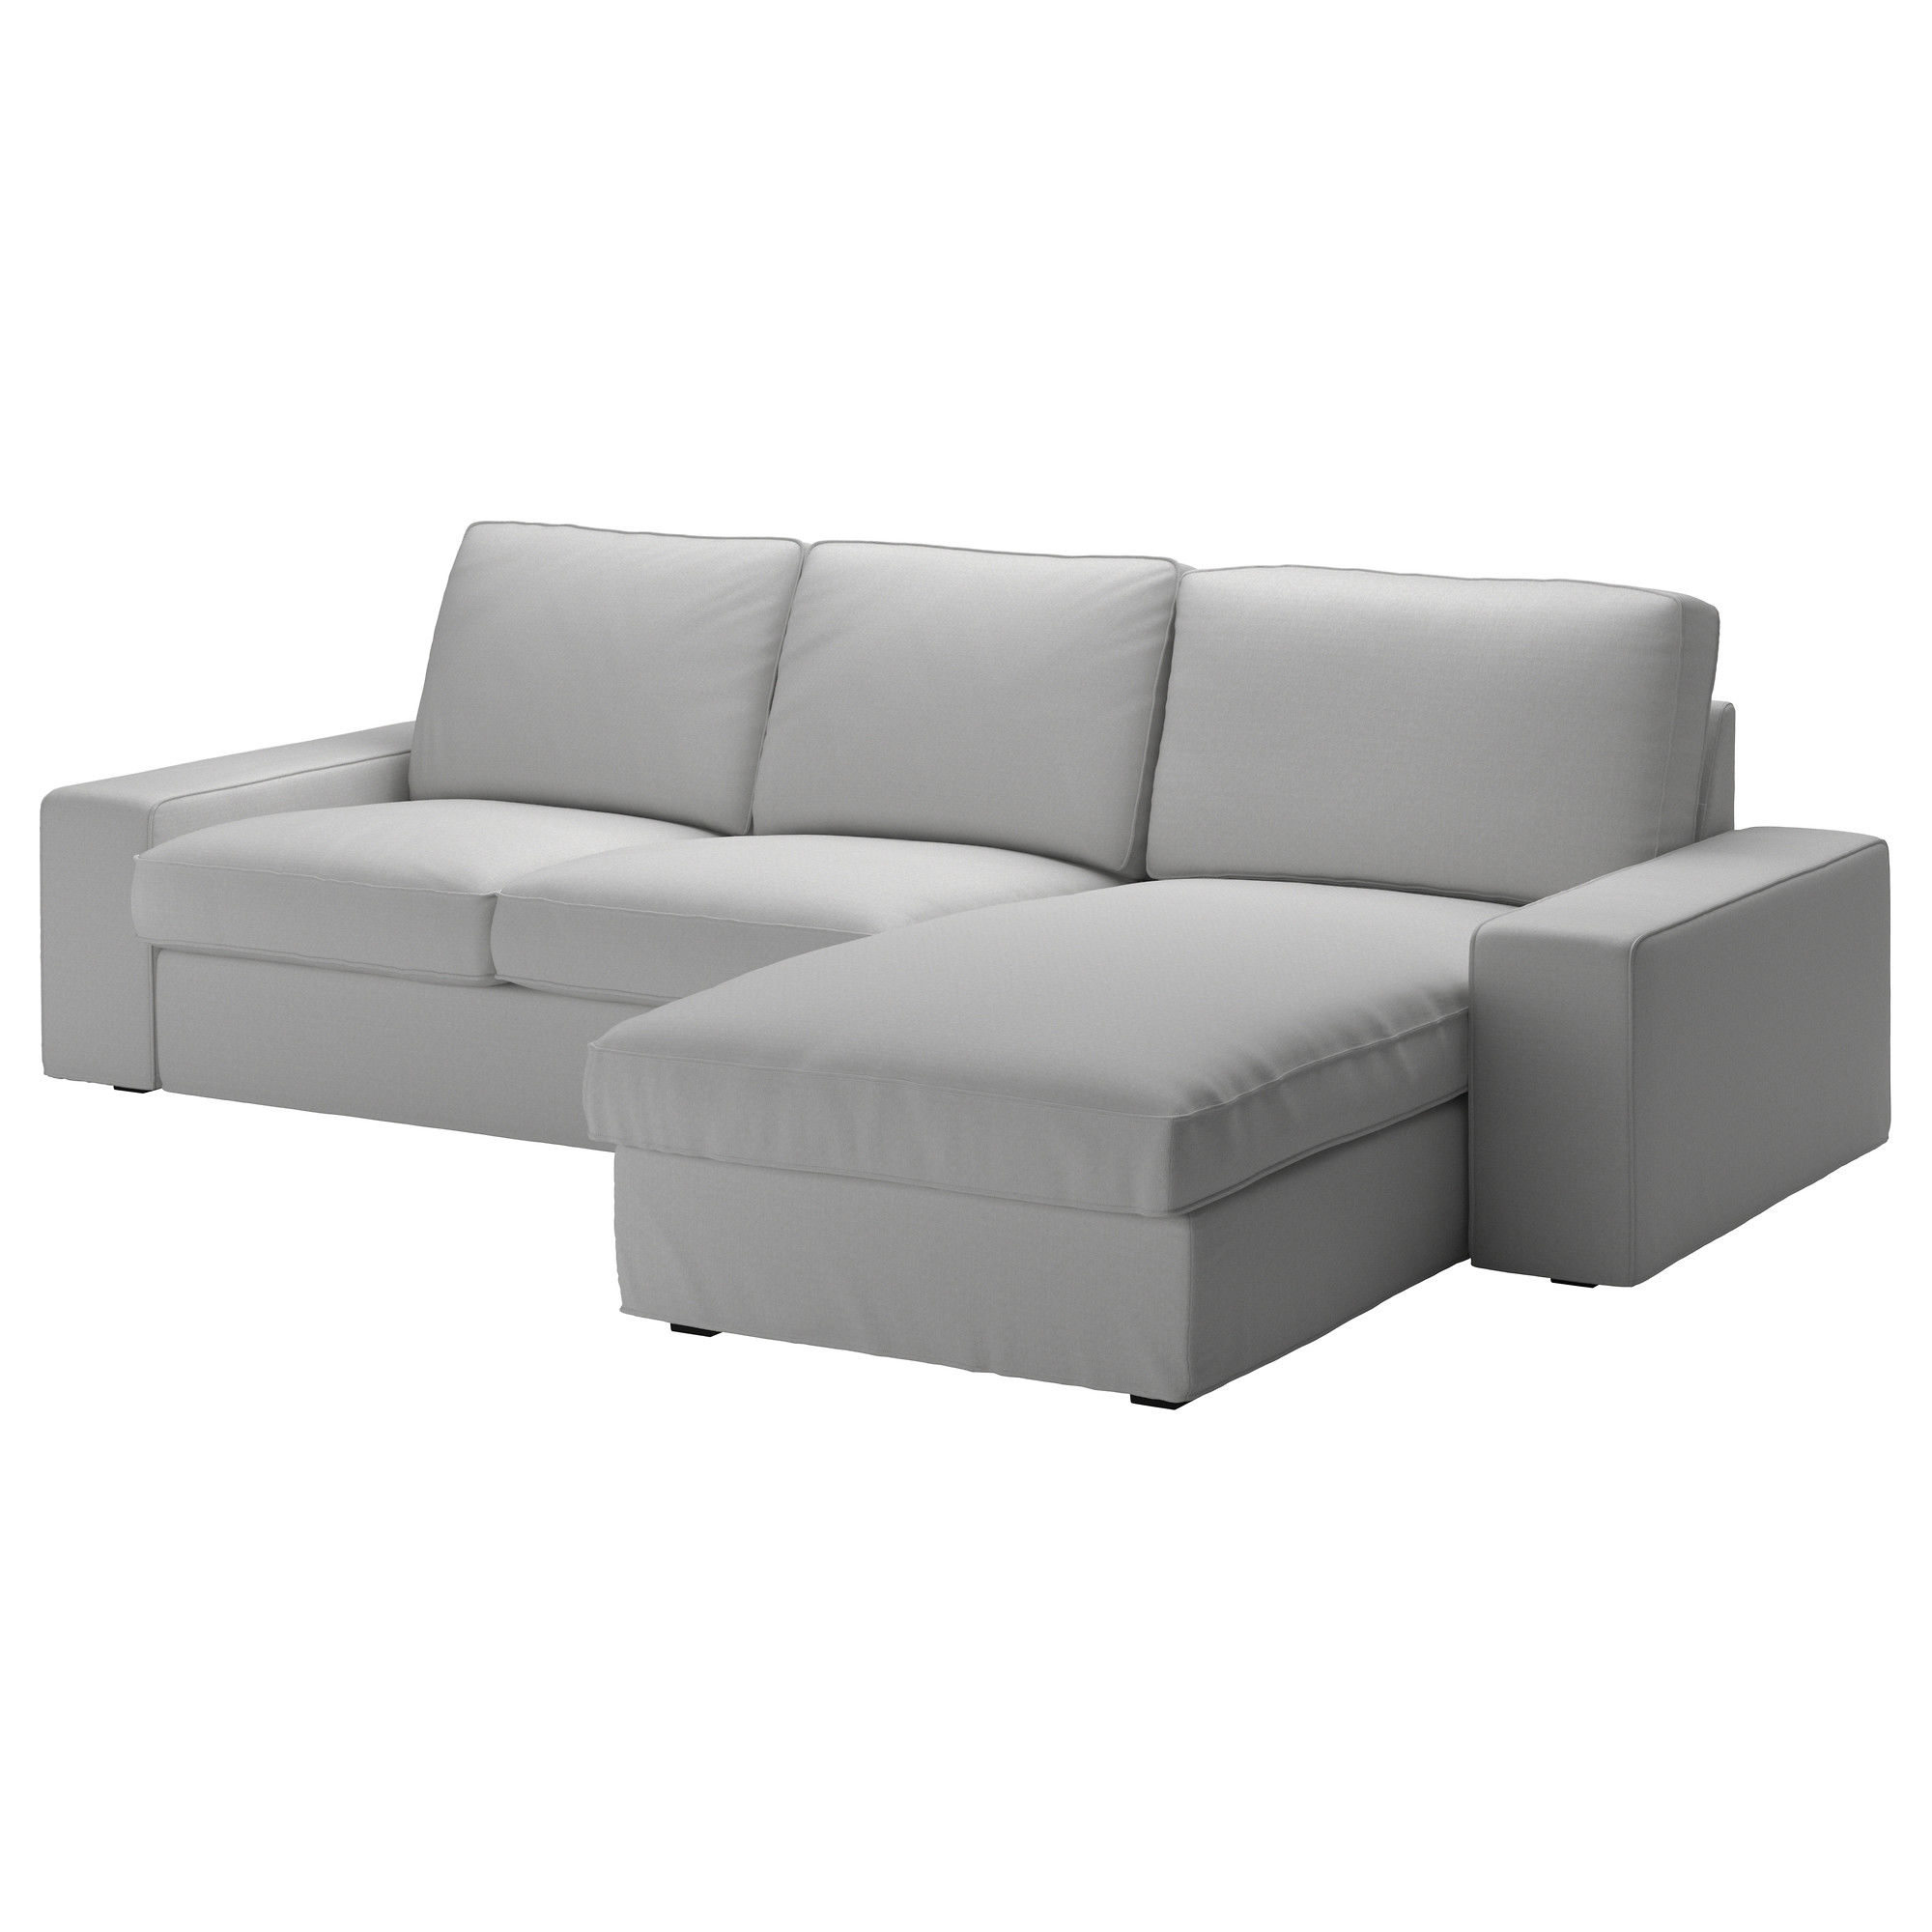 awesome contemporary sleeper sofa picture-Lovely Contemporary Sleeper sofa Design